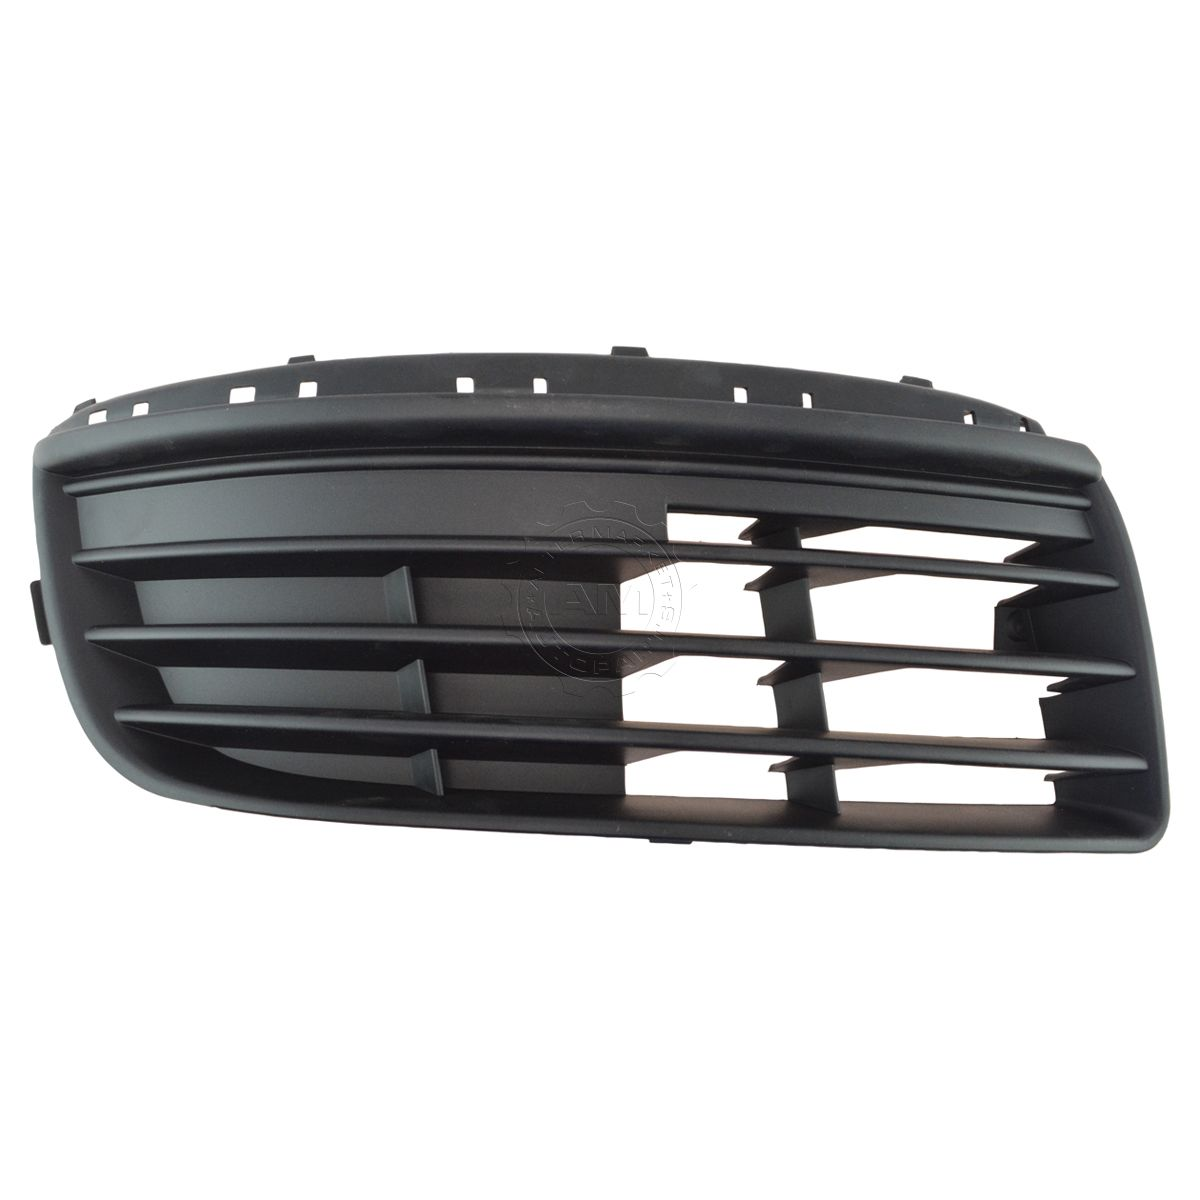 AM Front Bumper Cover For Chevy Equinox WITH FOG LAMP HOLE BLACK CAPA